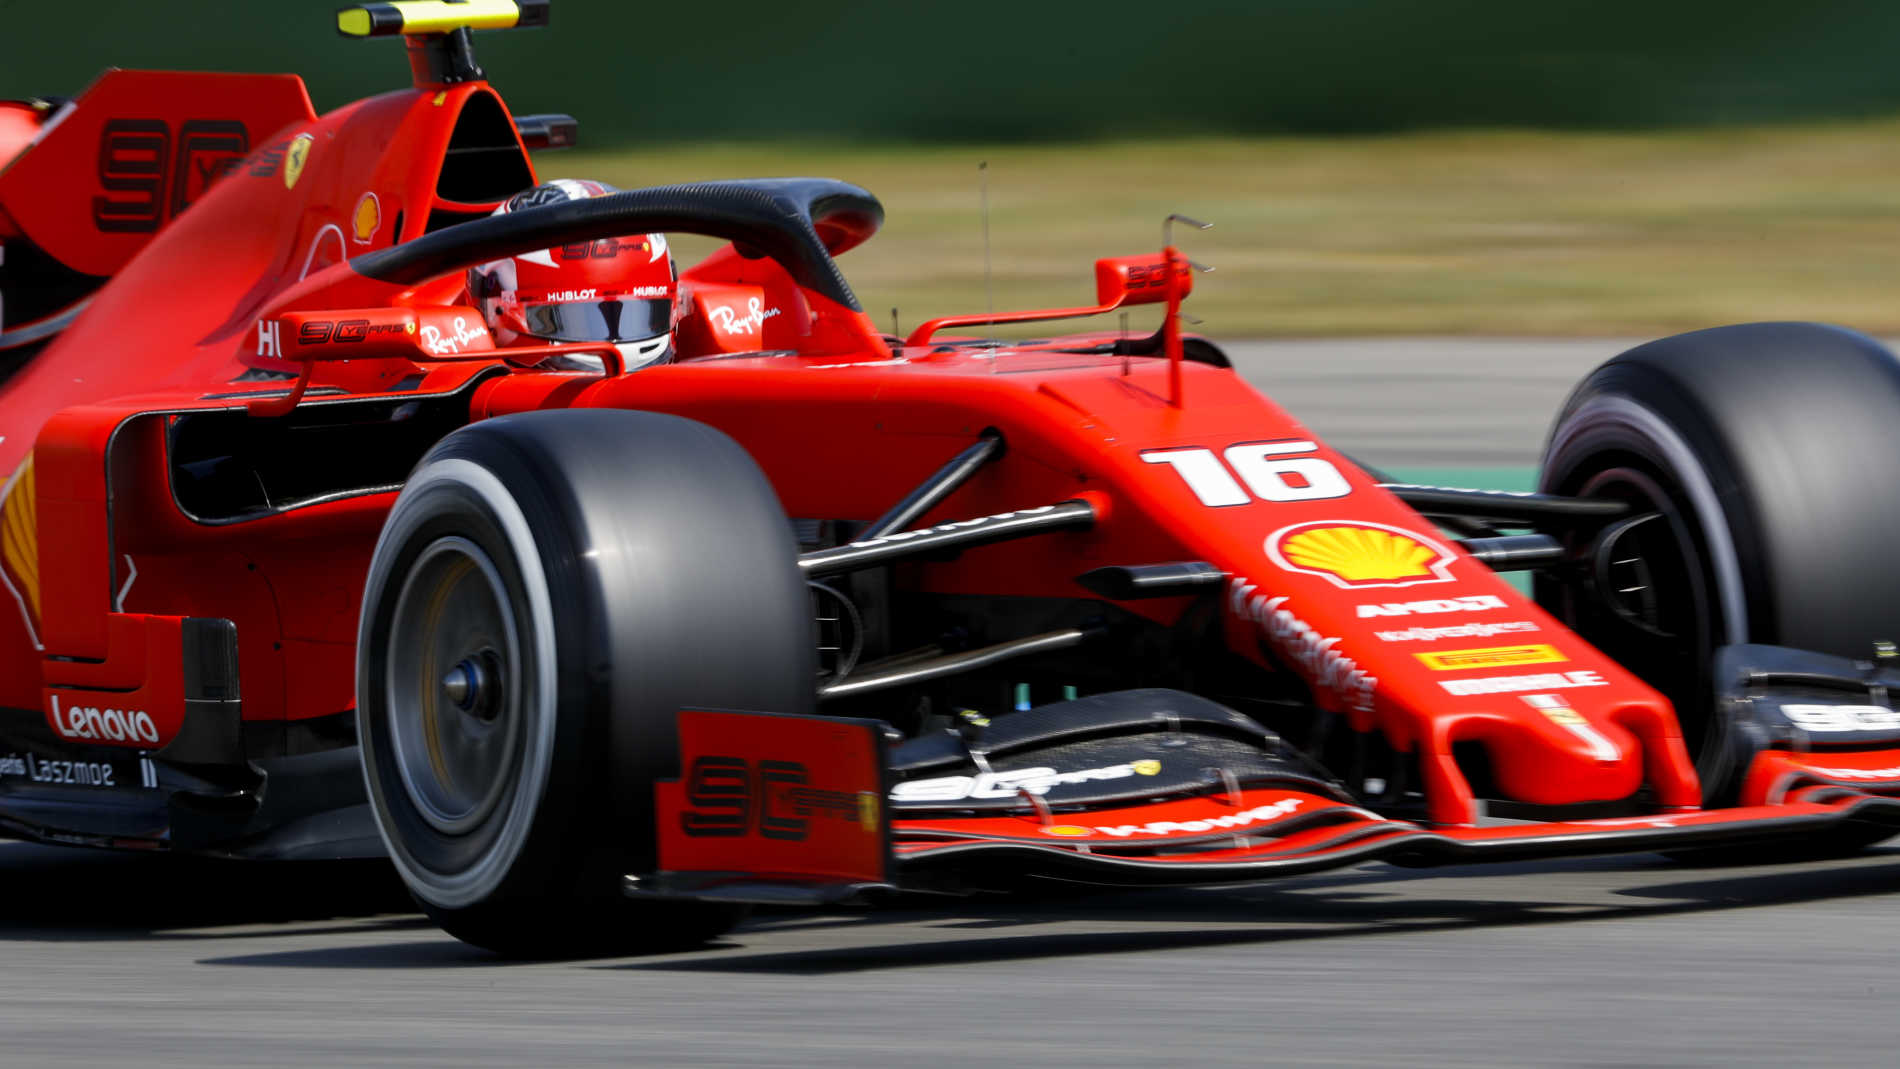 german grand prix 2019 fp2 report  leclerc leads in germany as gasly crashes out